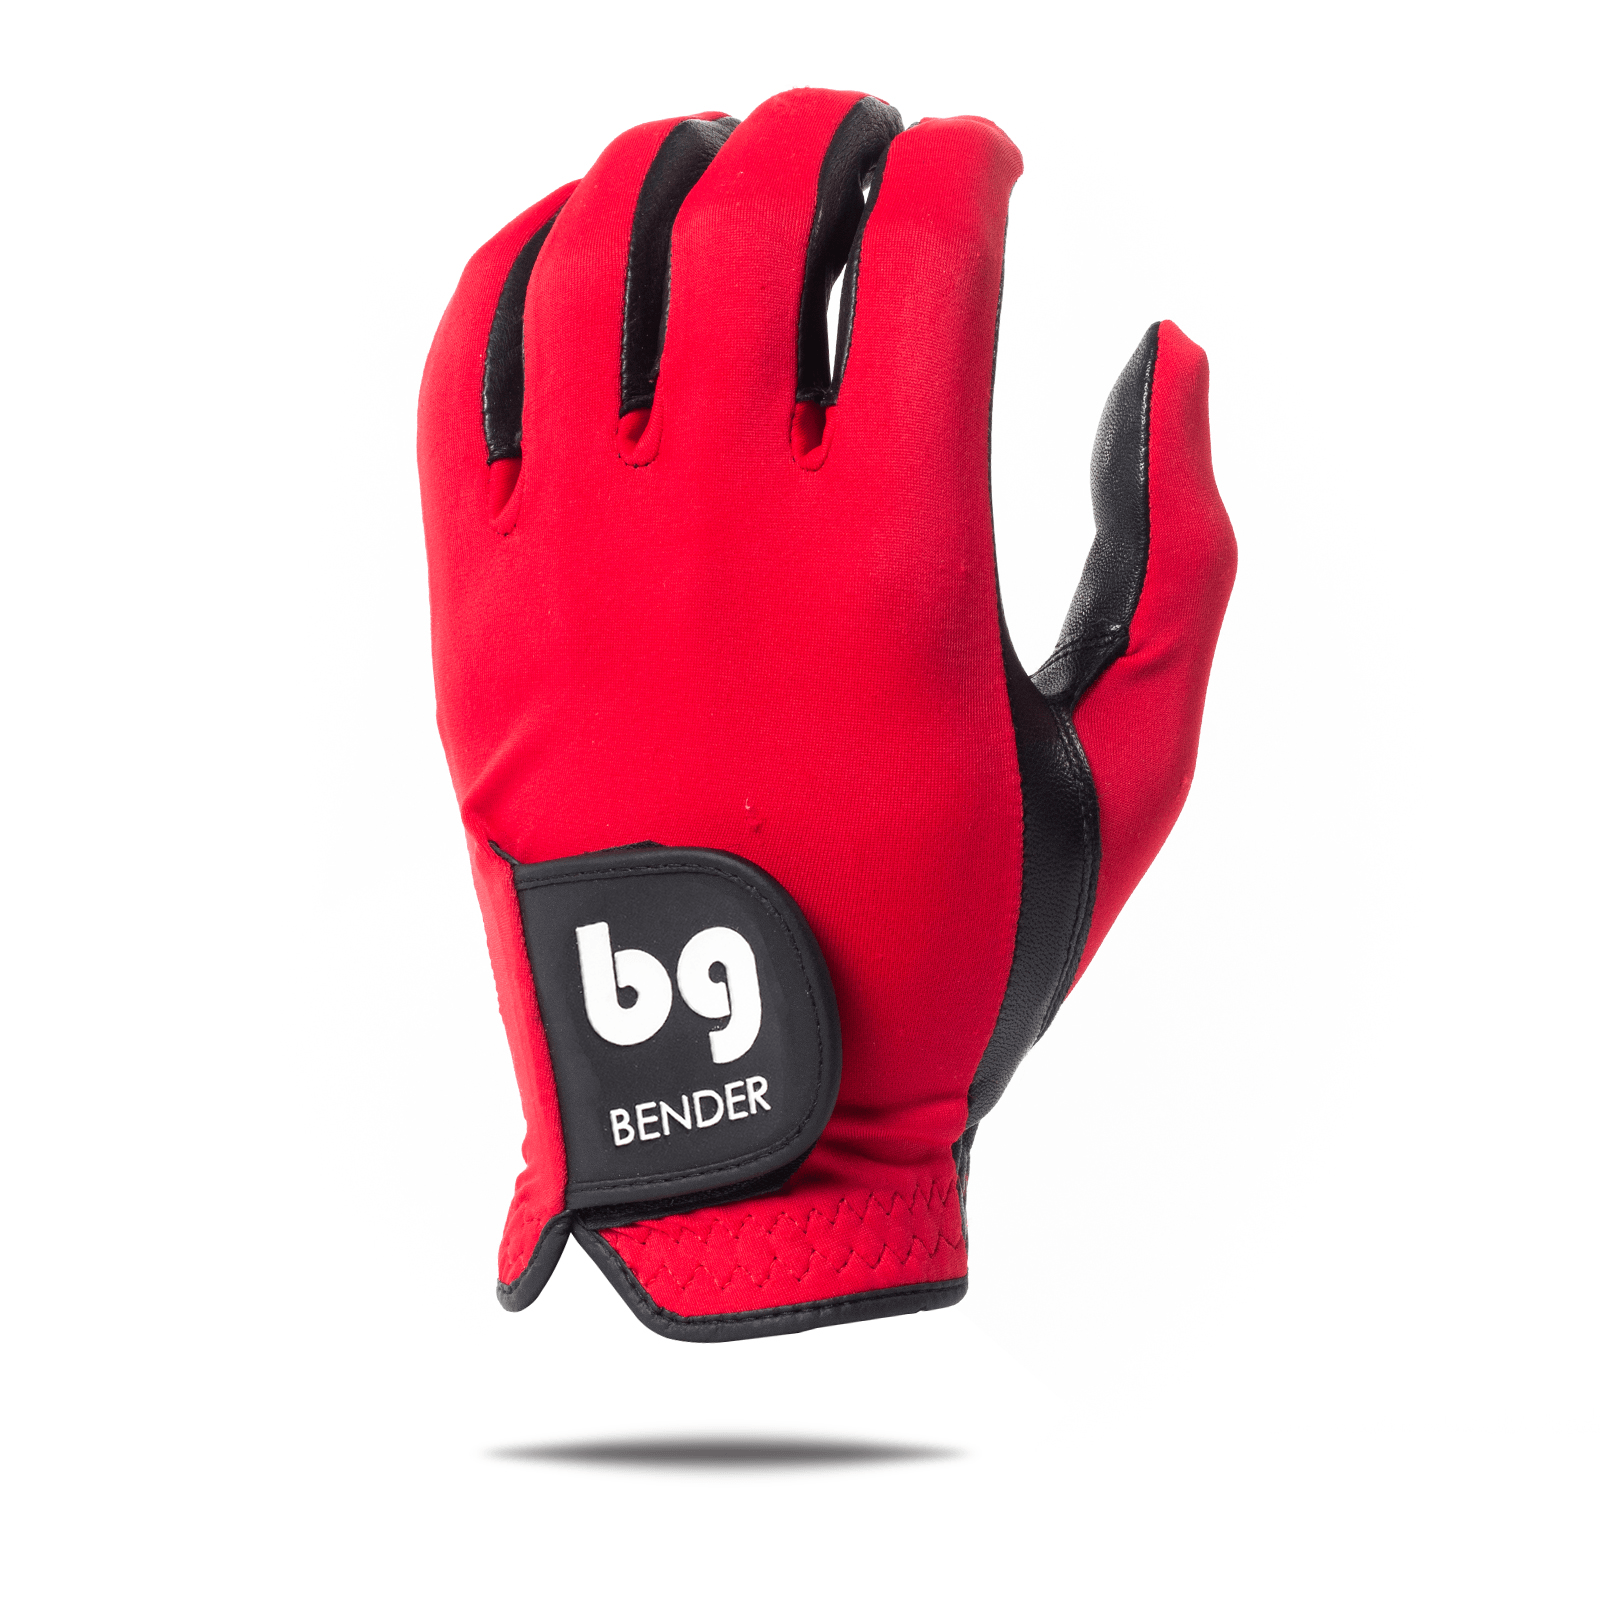 Red Spandex Golf Glove